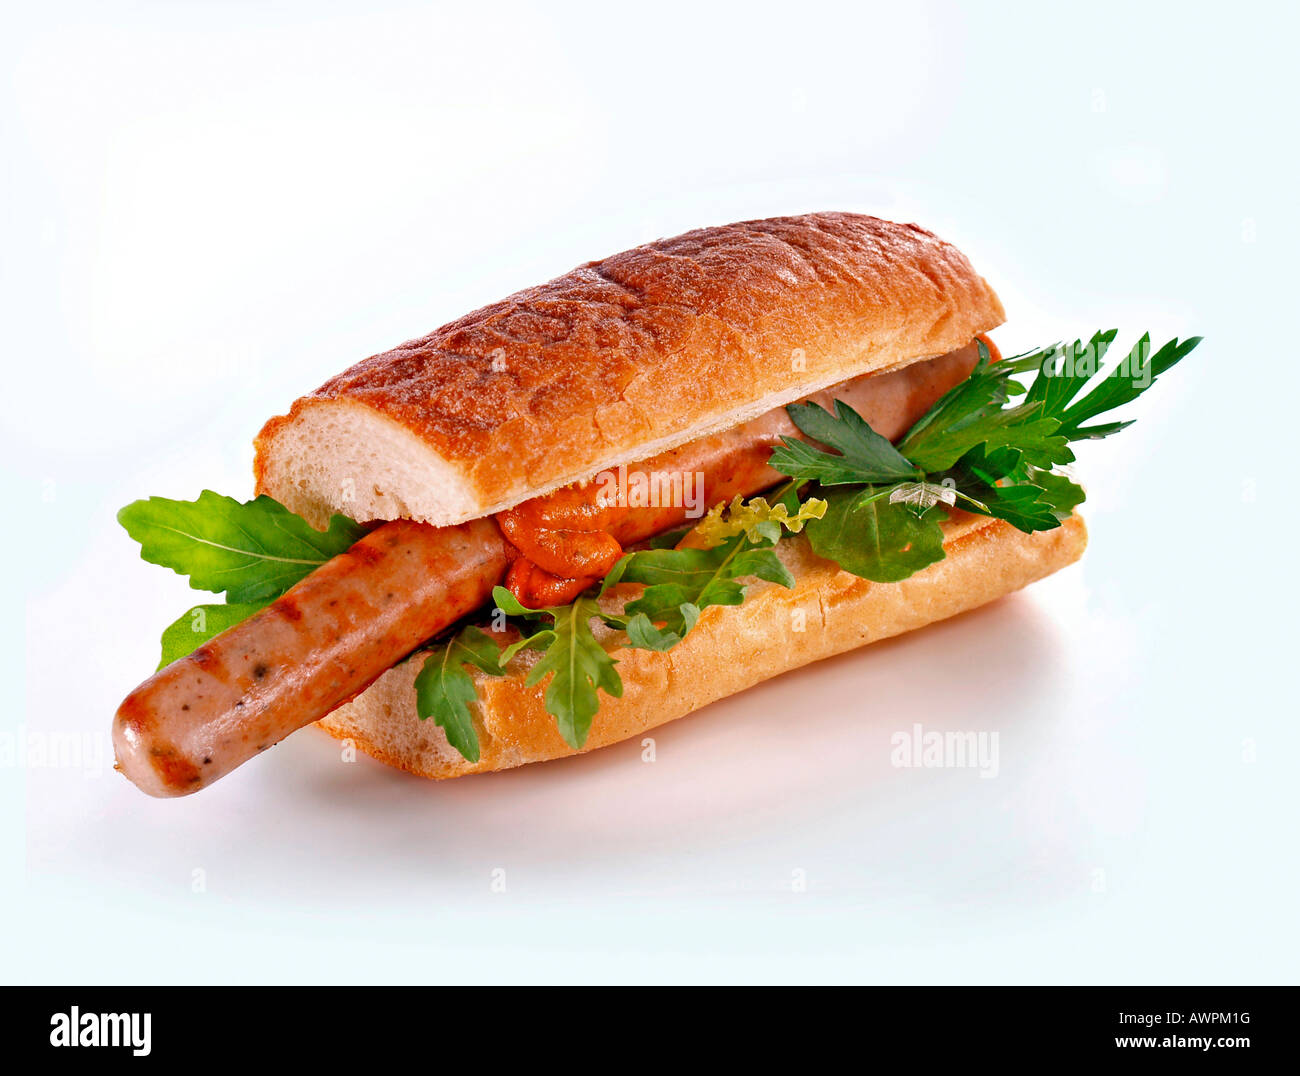 Thuringian-style bratwurst, mustard and lettuce on a baguette Stock Photo